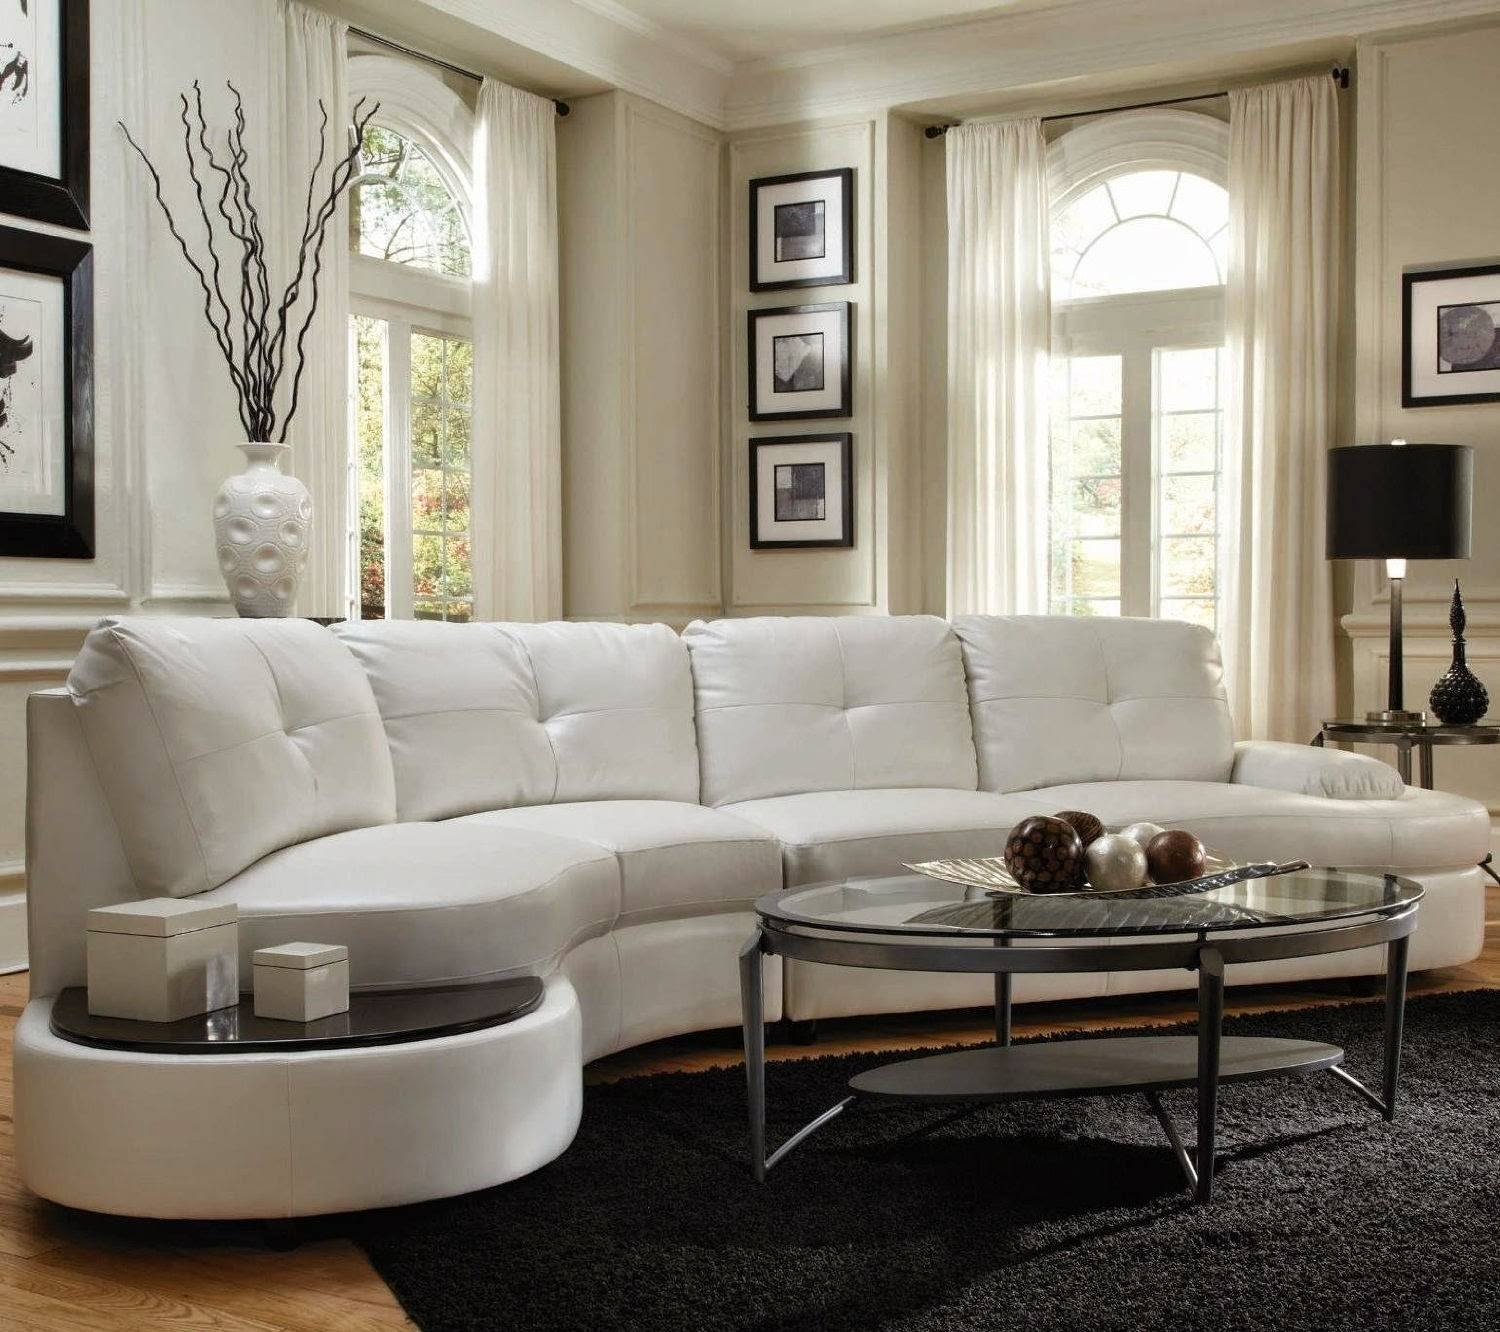 Fabulous Oval Sectional Sofas With Appealing Design - Ajara Decor regarding Oval Sofas (Image 4 of 30)